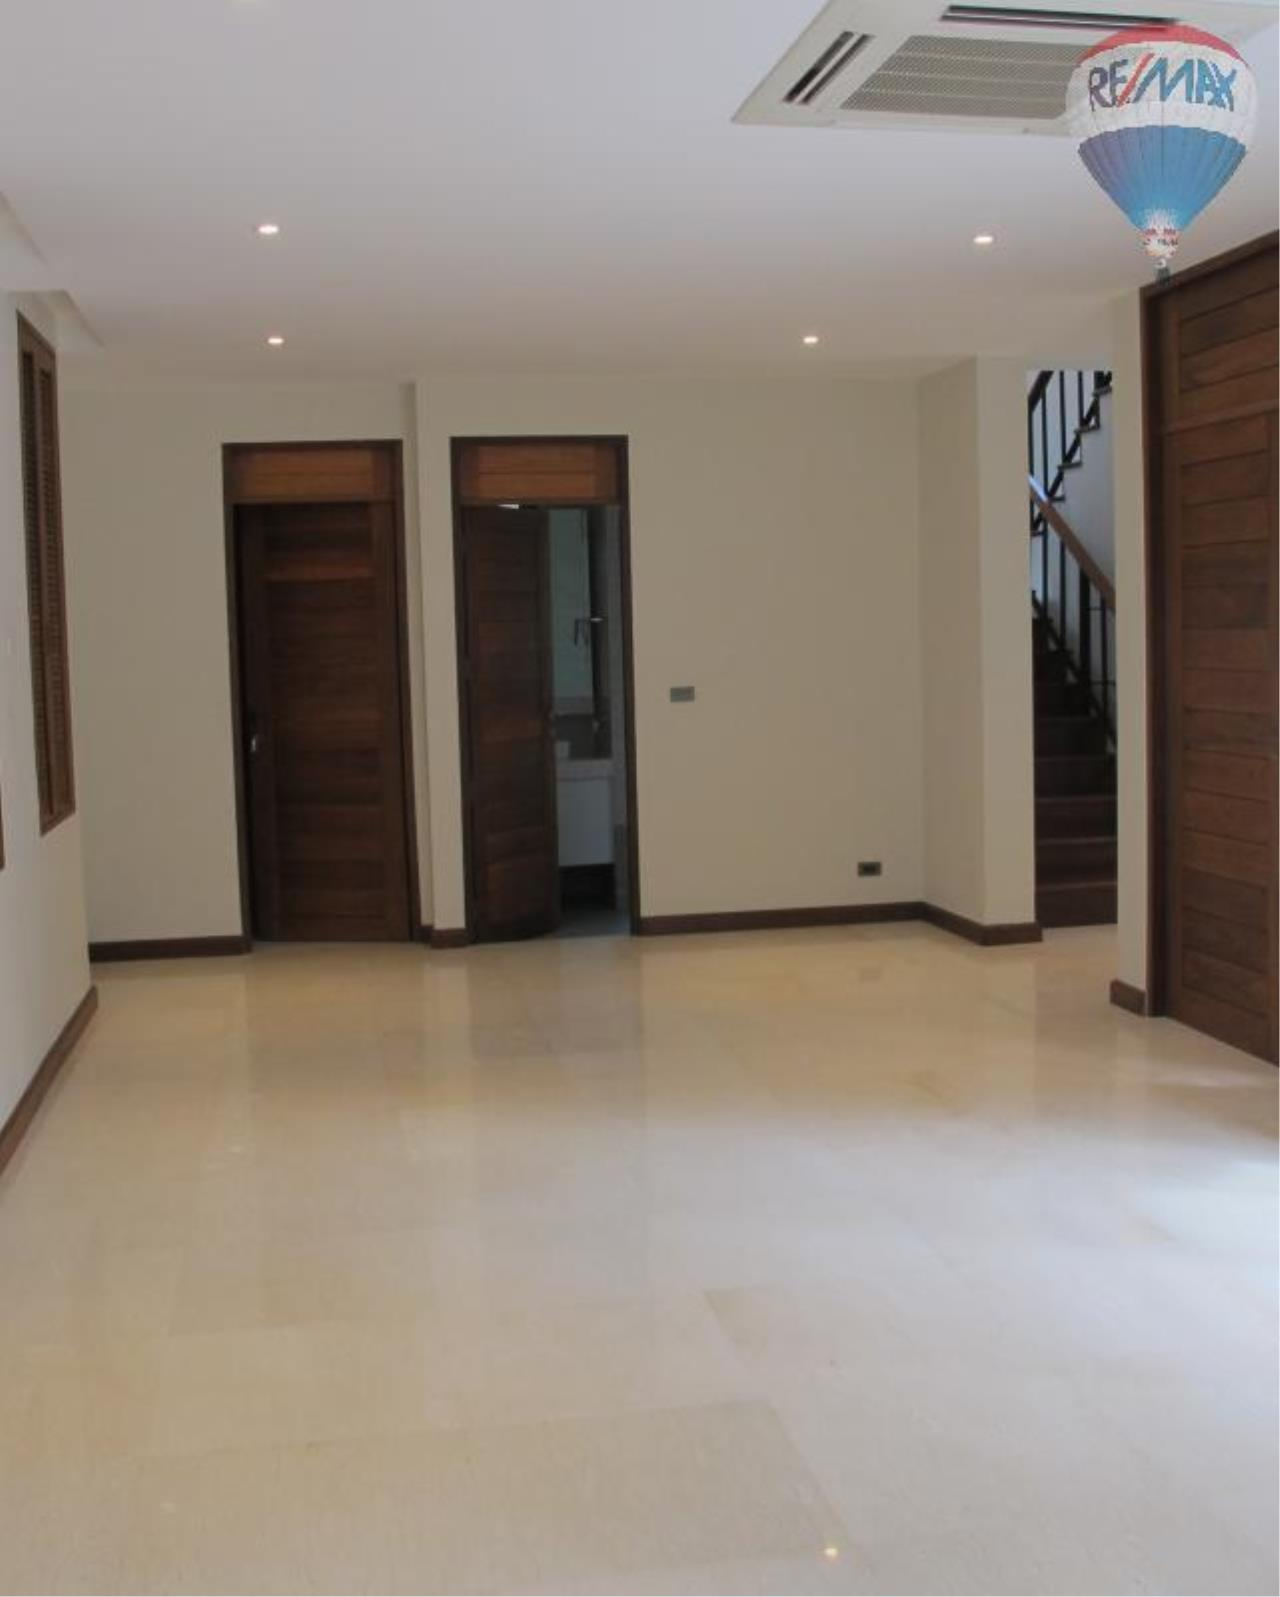 RE/MAX Properties Agency's 4 Bedroom House 450 sq.m. for Rent in Sukhumvit 24 4